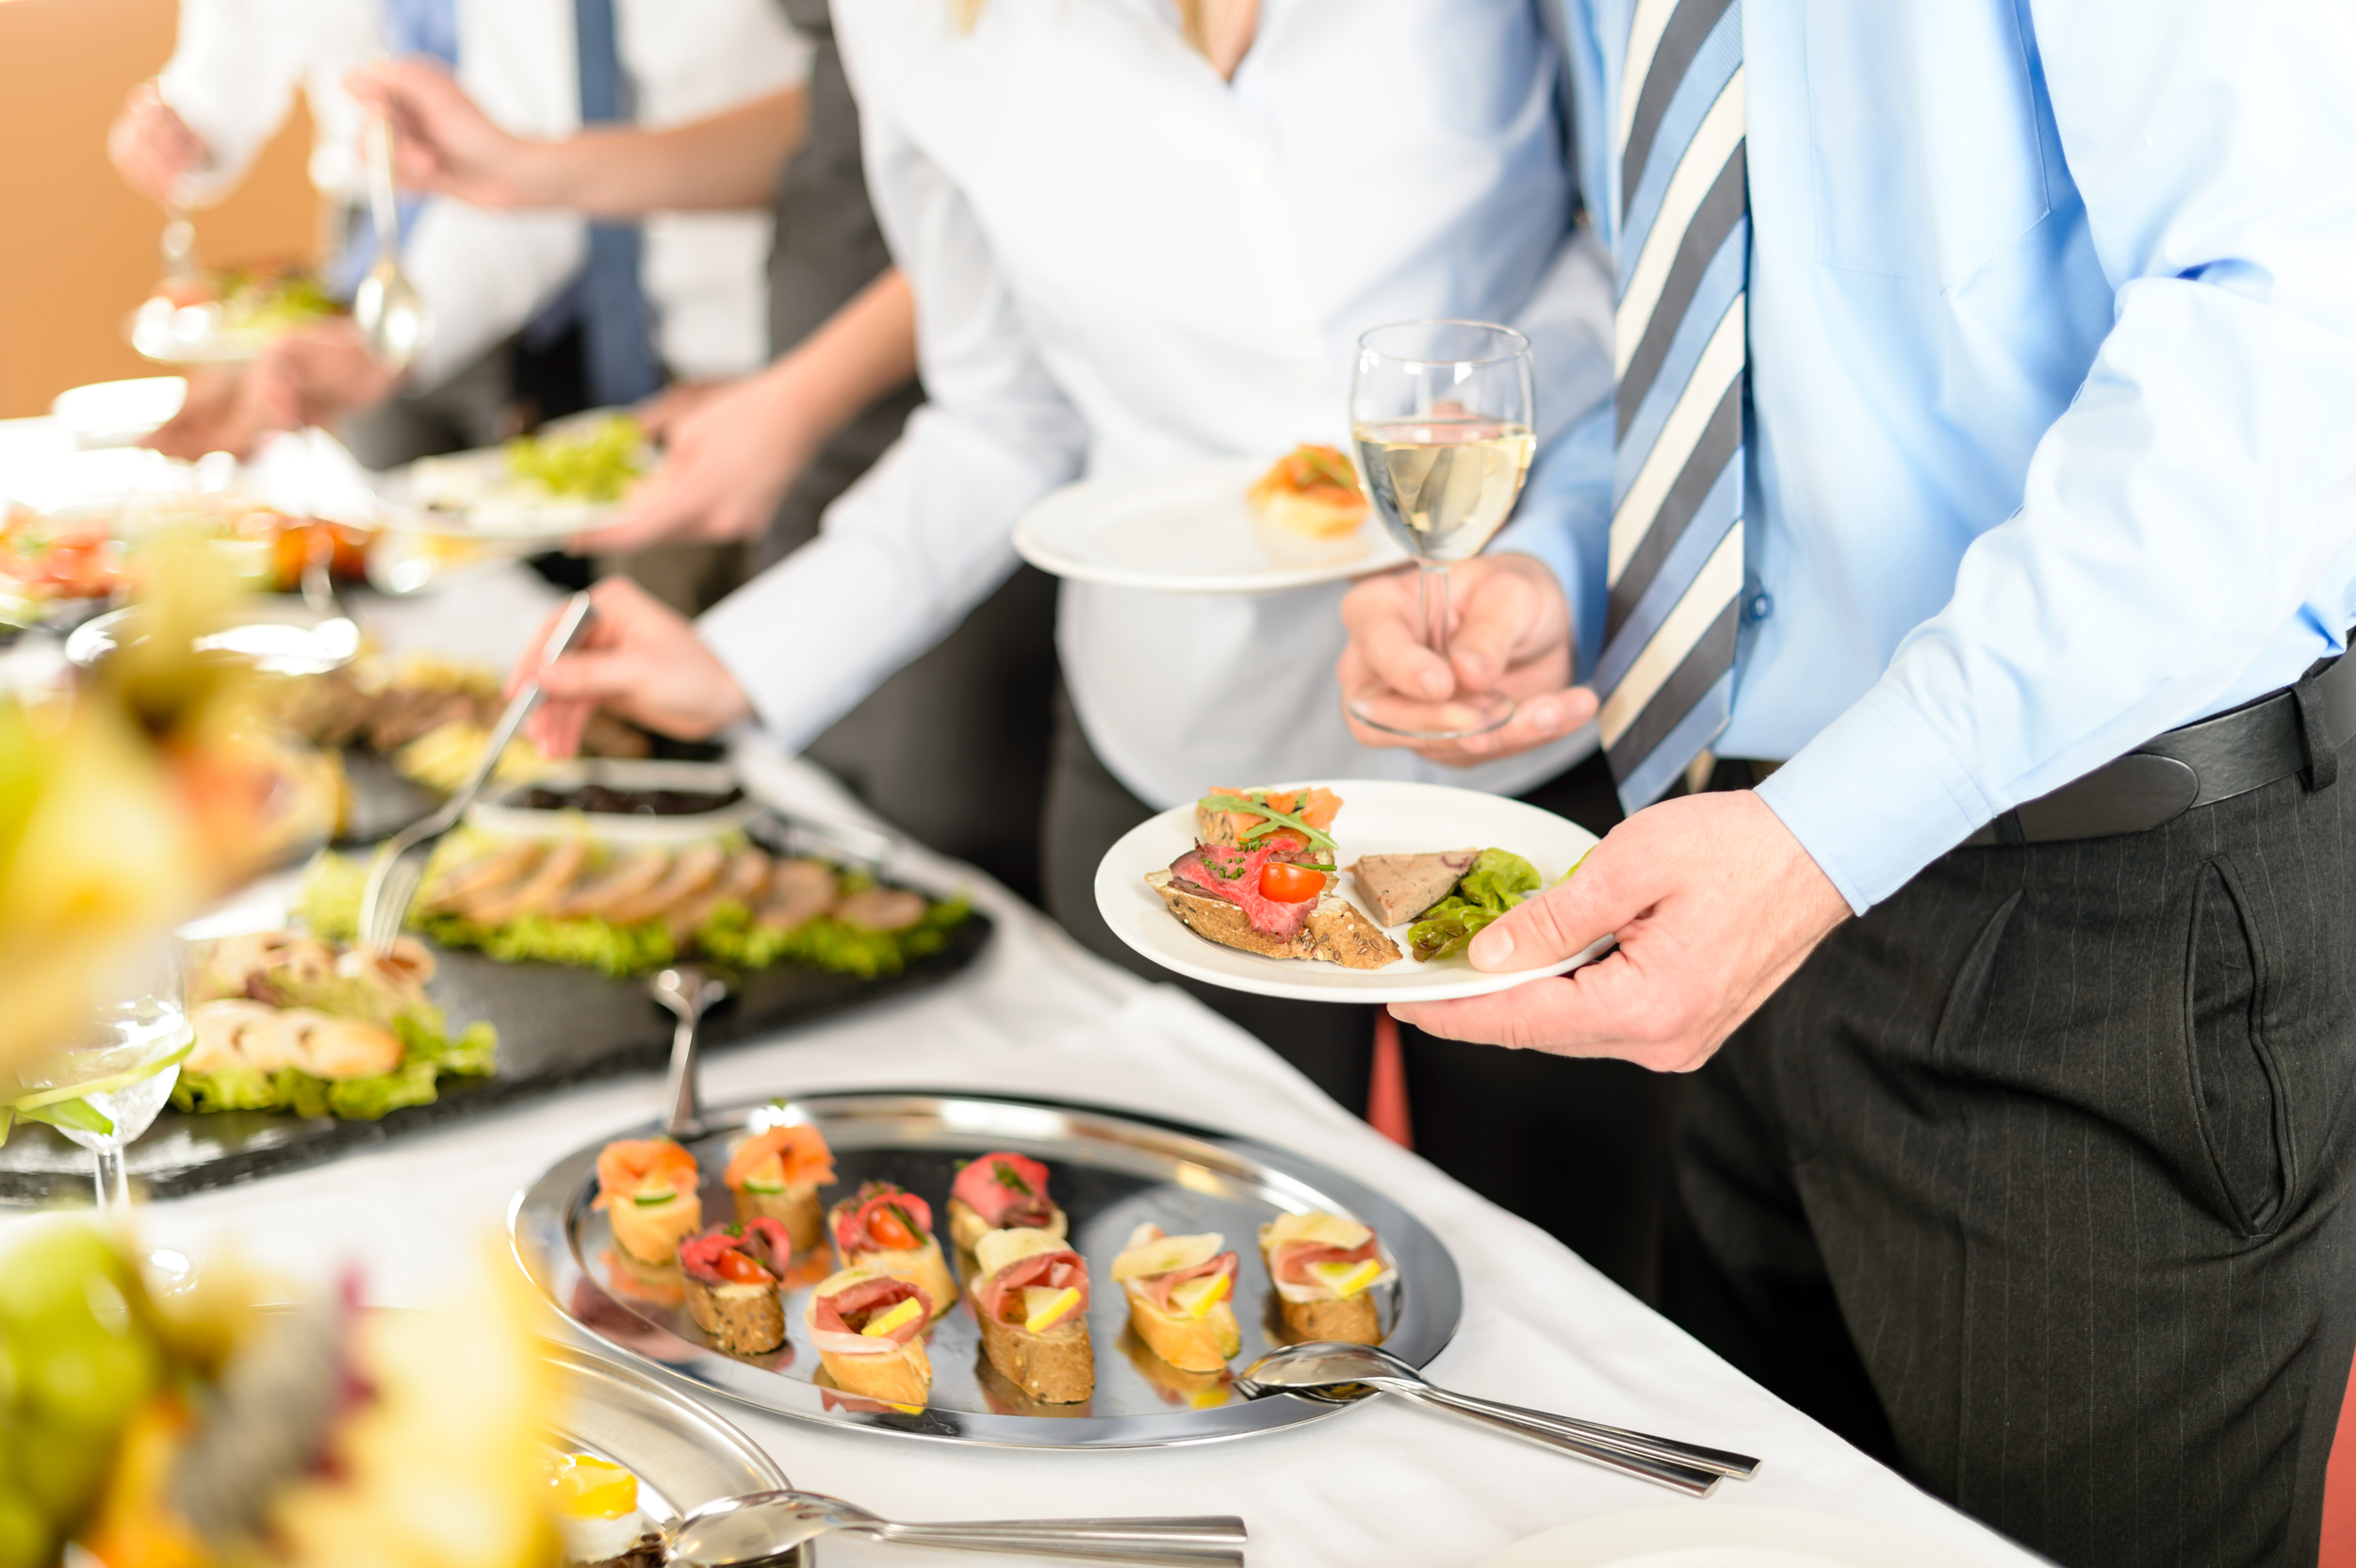 bigstock-Catering-at-business-company-e-33345038.jpg